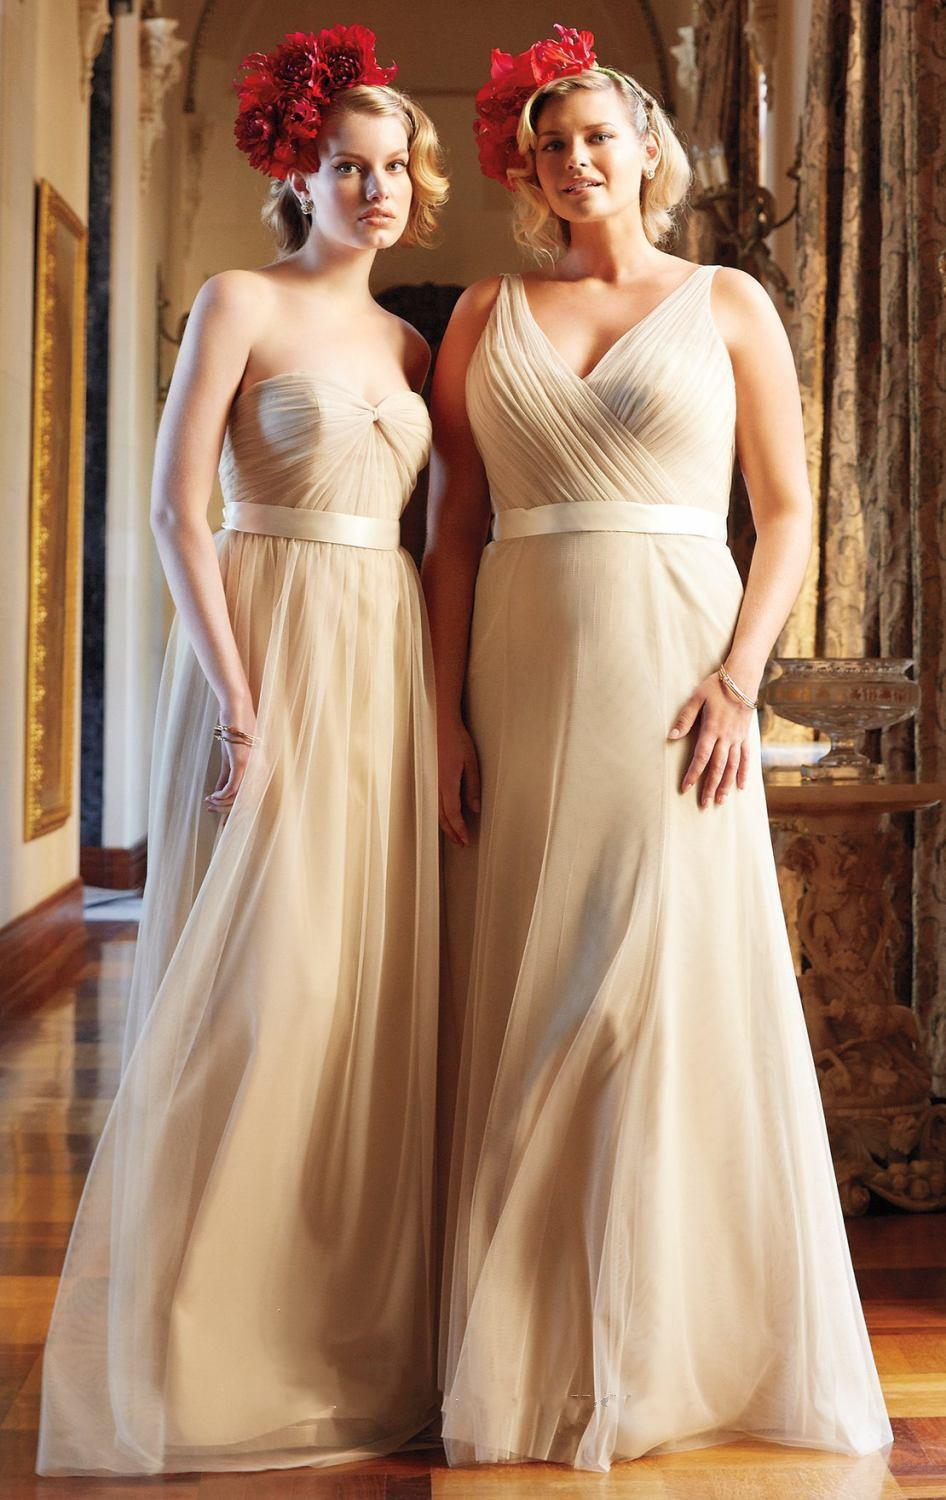 Two styles champagne plus size bridesmaid dresses 2015 maid of two styles champagne plus size bridesmaid dresses 2015 maid of honor dress sweetheart v neck ruched tulle cheap bridesmaid dresses with belt 2015 evening ombrellifo Image collections